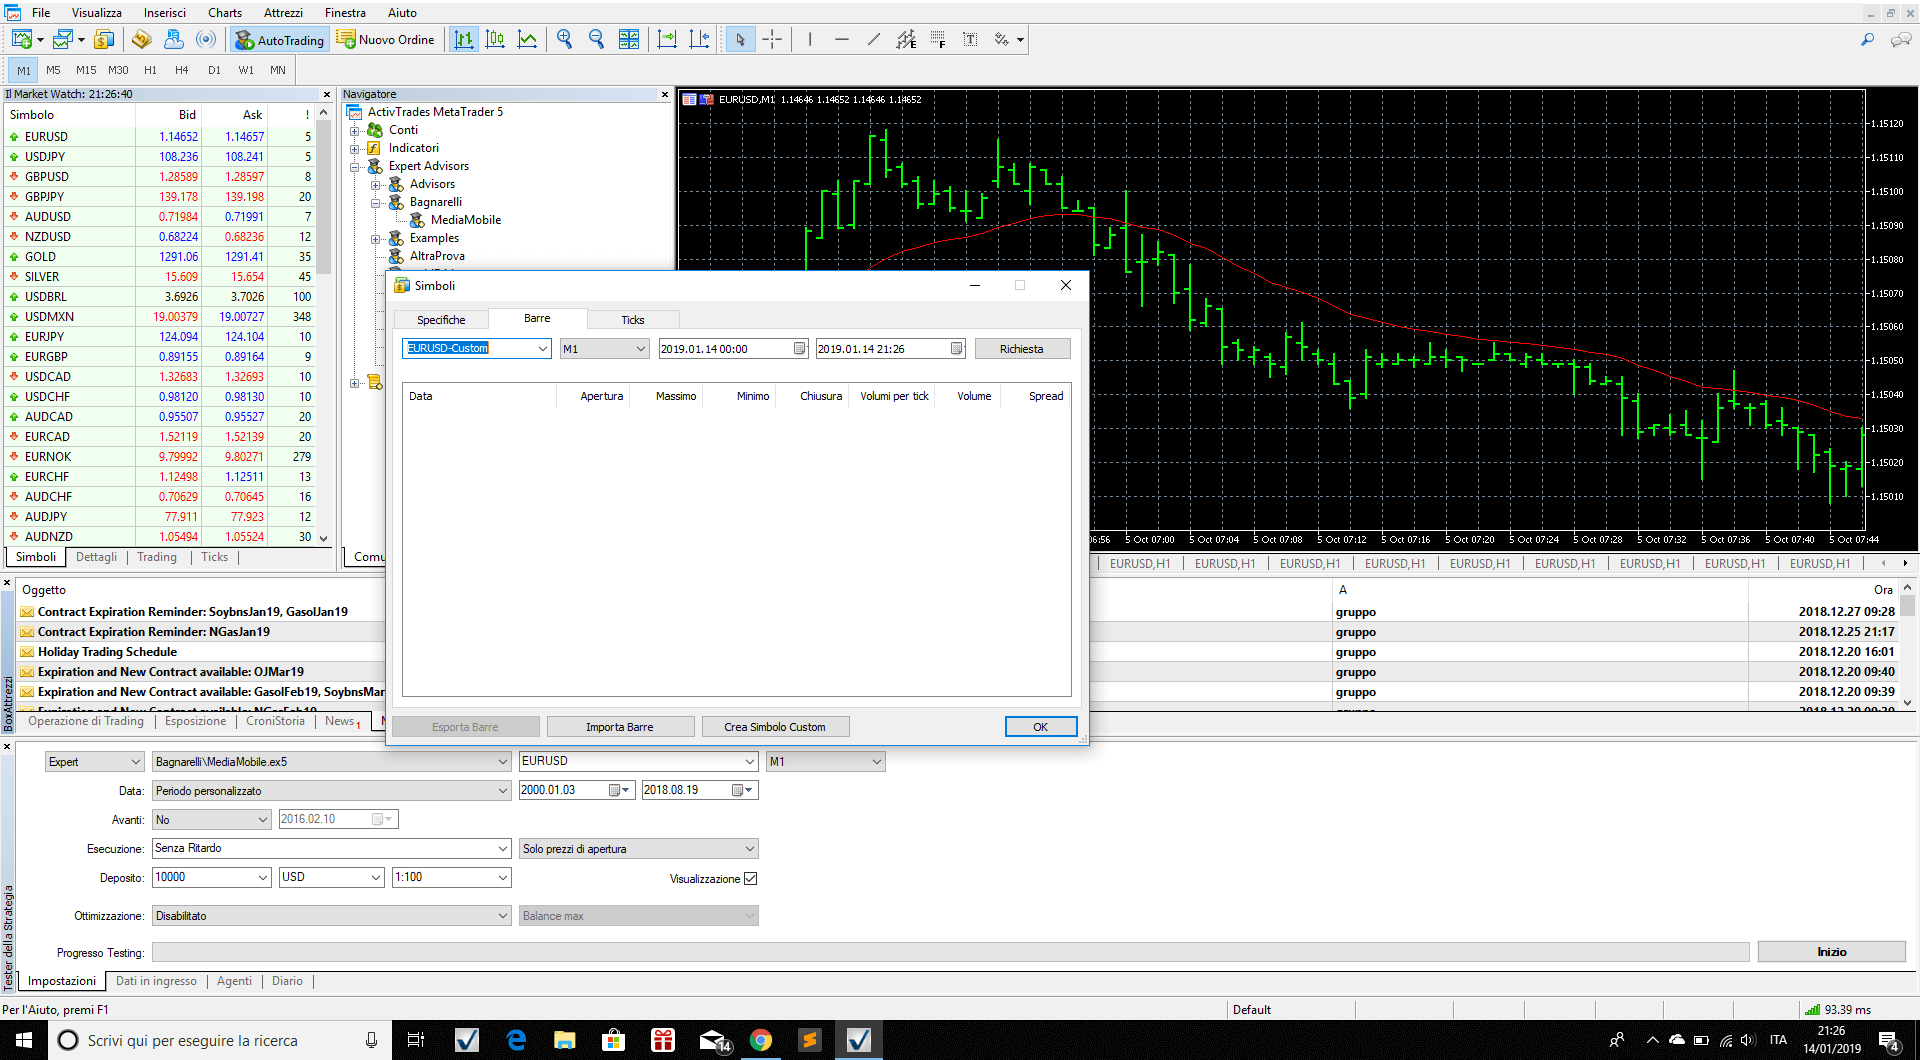 Bars to import 1 minute data